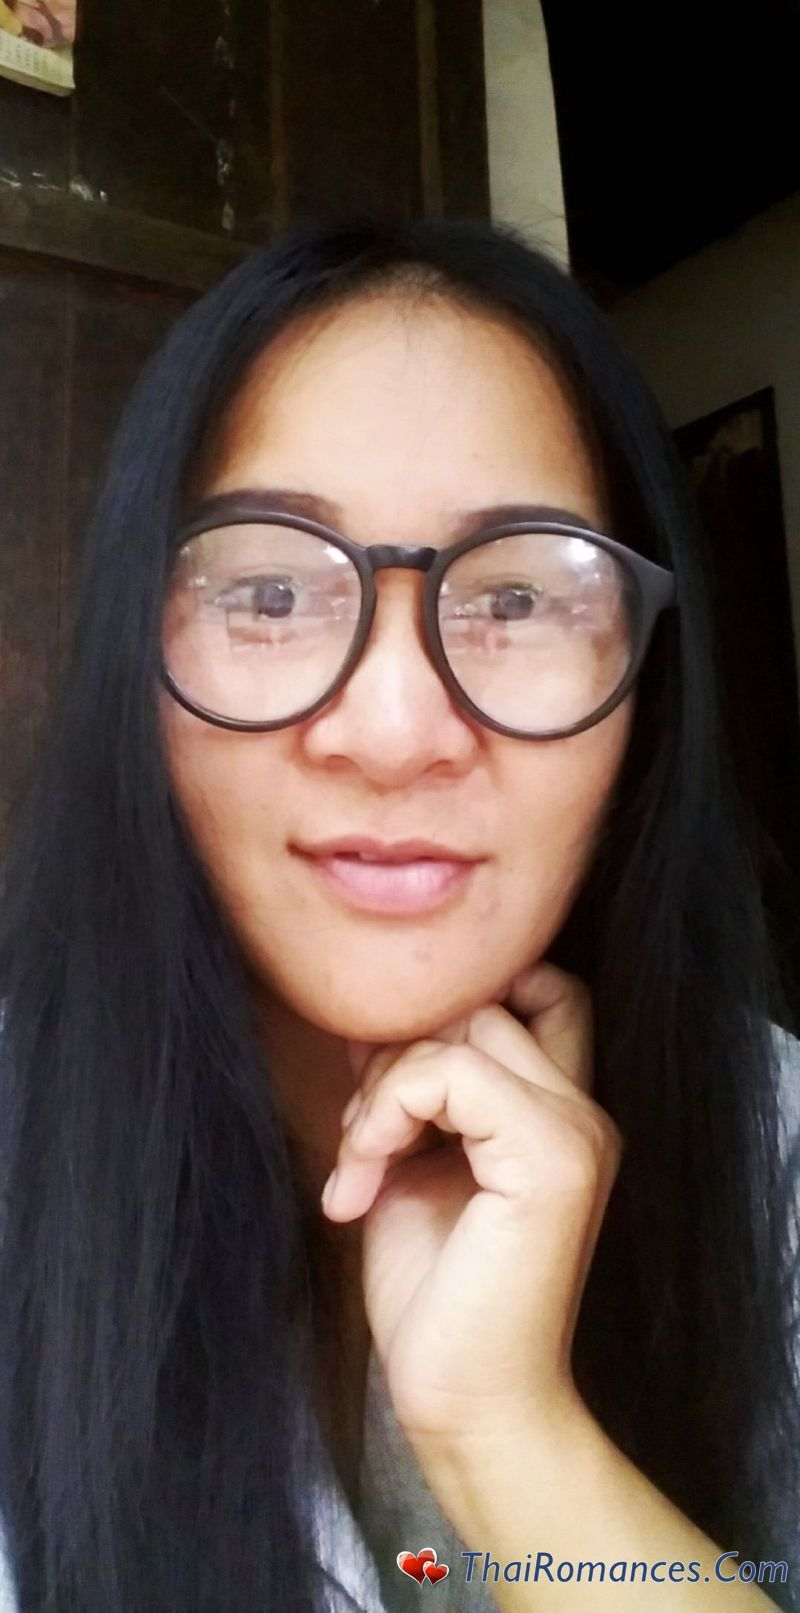 udon thani milf personals Gukgai 21 pre-op trans single udon thani (thailand) 21 pre-op trans my ladyboy date quality dating for ladyboys and nice guys.